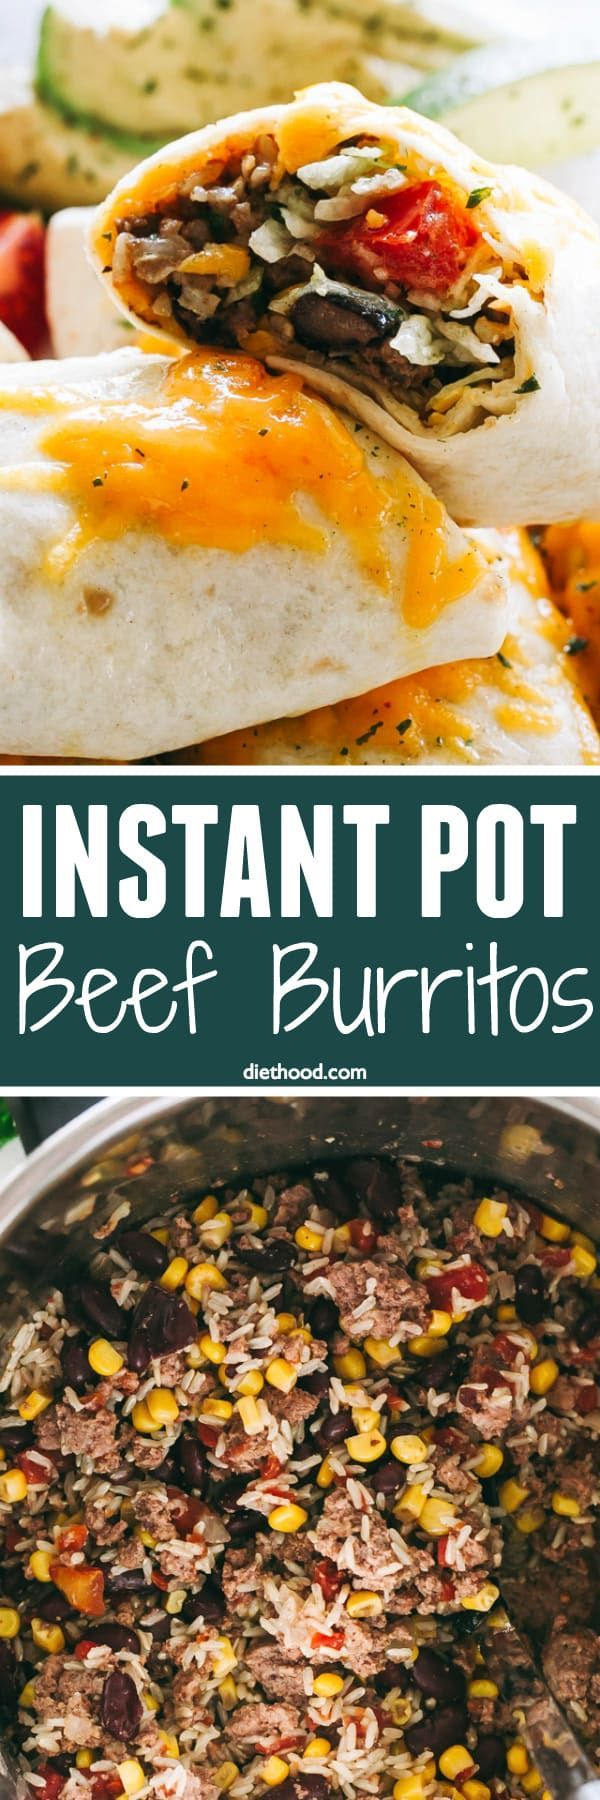 Instant Pot Beef Burritos Recipe - Filled with beef, rice, onions, tomatoes, beans, corn and cheese, theseInstant Pot burritosare simple, FAST, filling and packed with flavor! Tender and super flavorful, this pressure cooker / instant pot beef burrito filling has just the right amount of spice and it's perfect for your taco or burrito night. Also,nothing can beat thecookingtime!